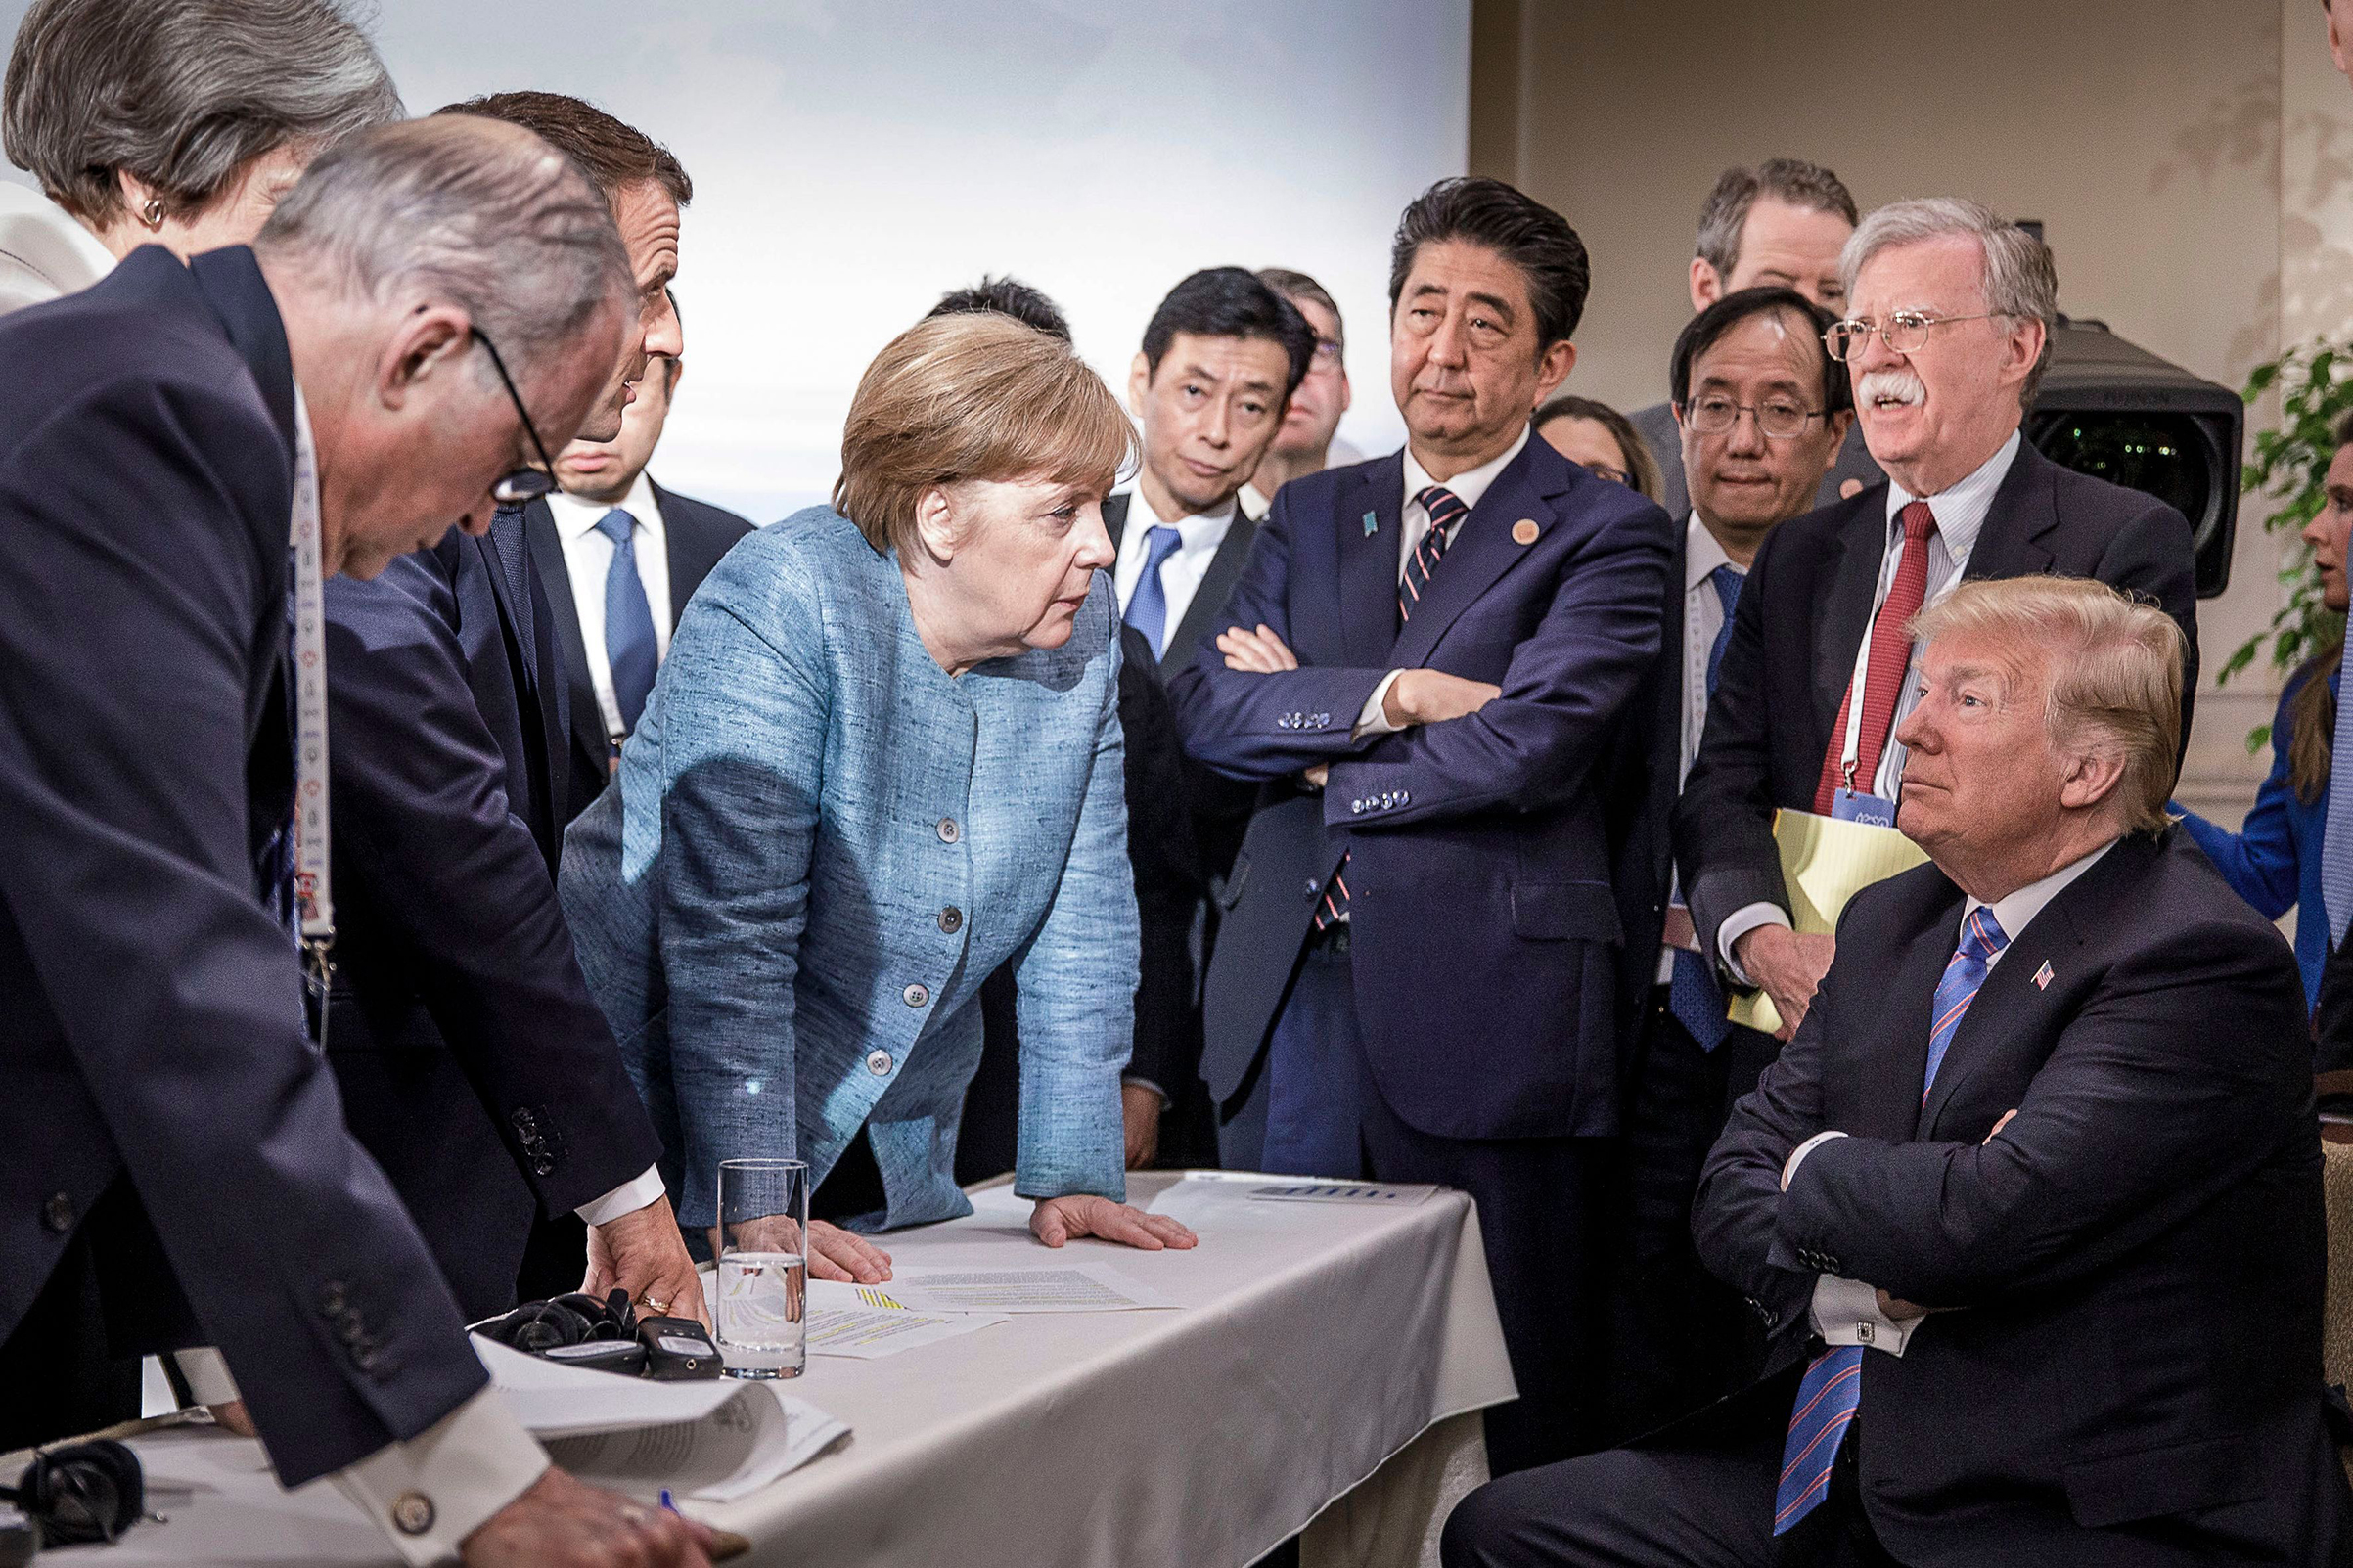 Angela Merkel-Donald Trump Photo At G7 Summit